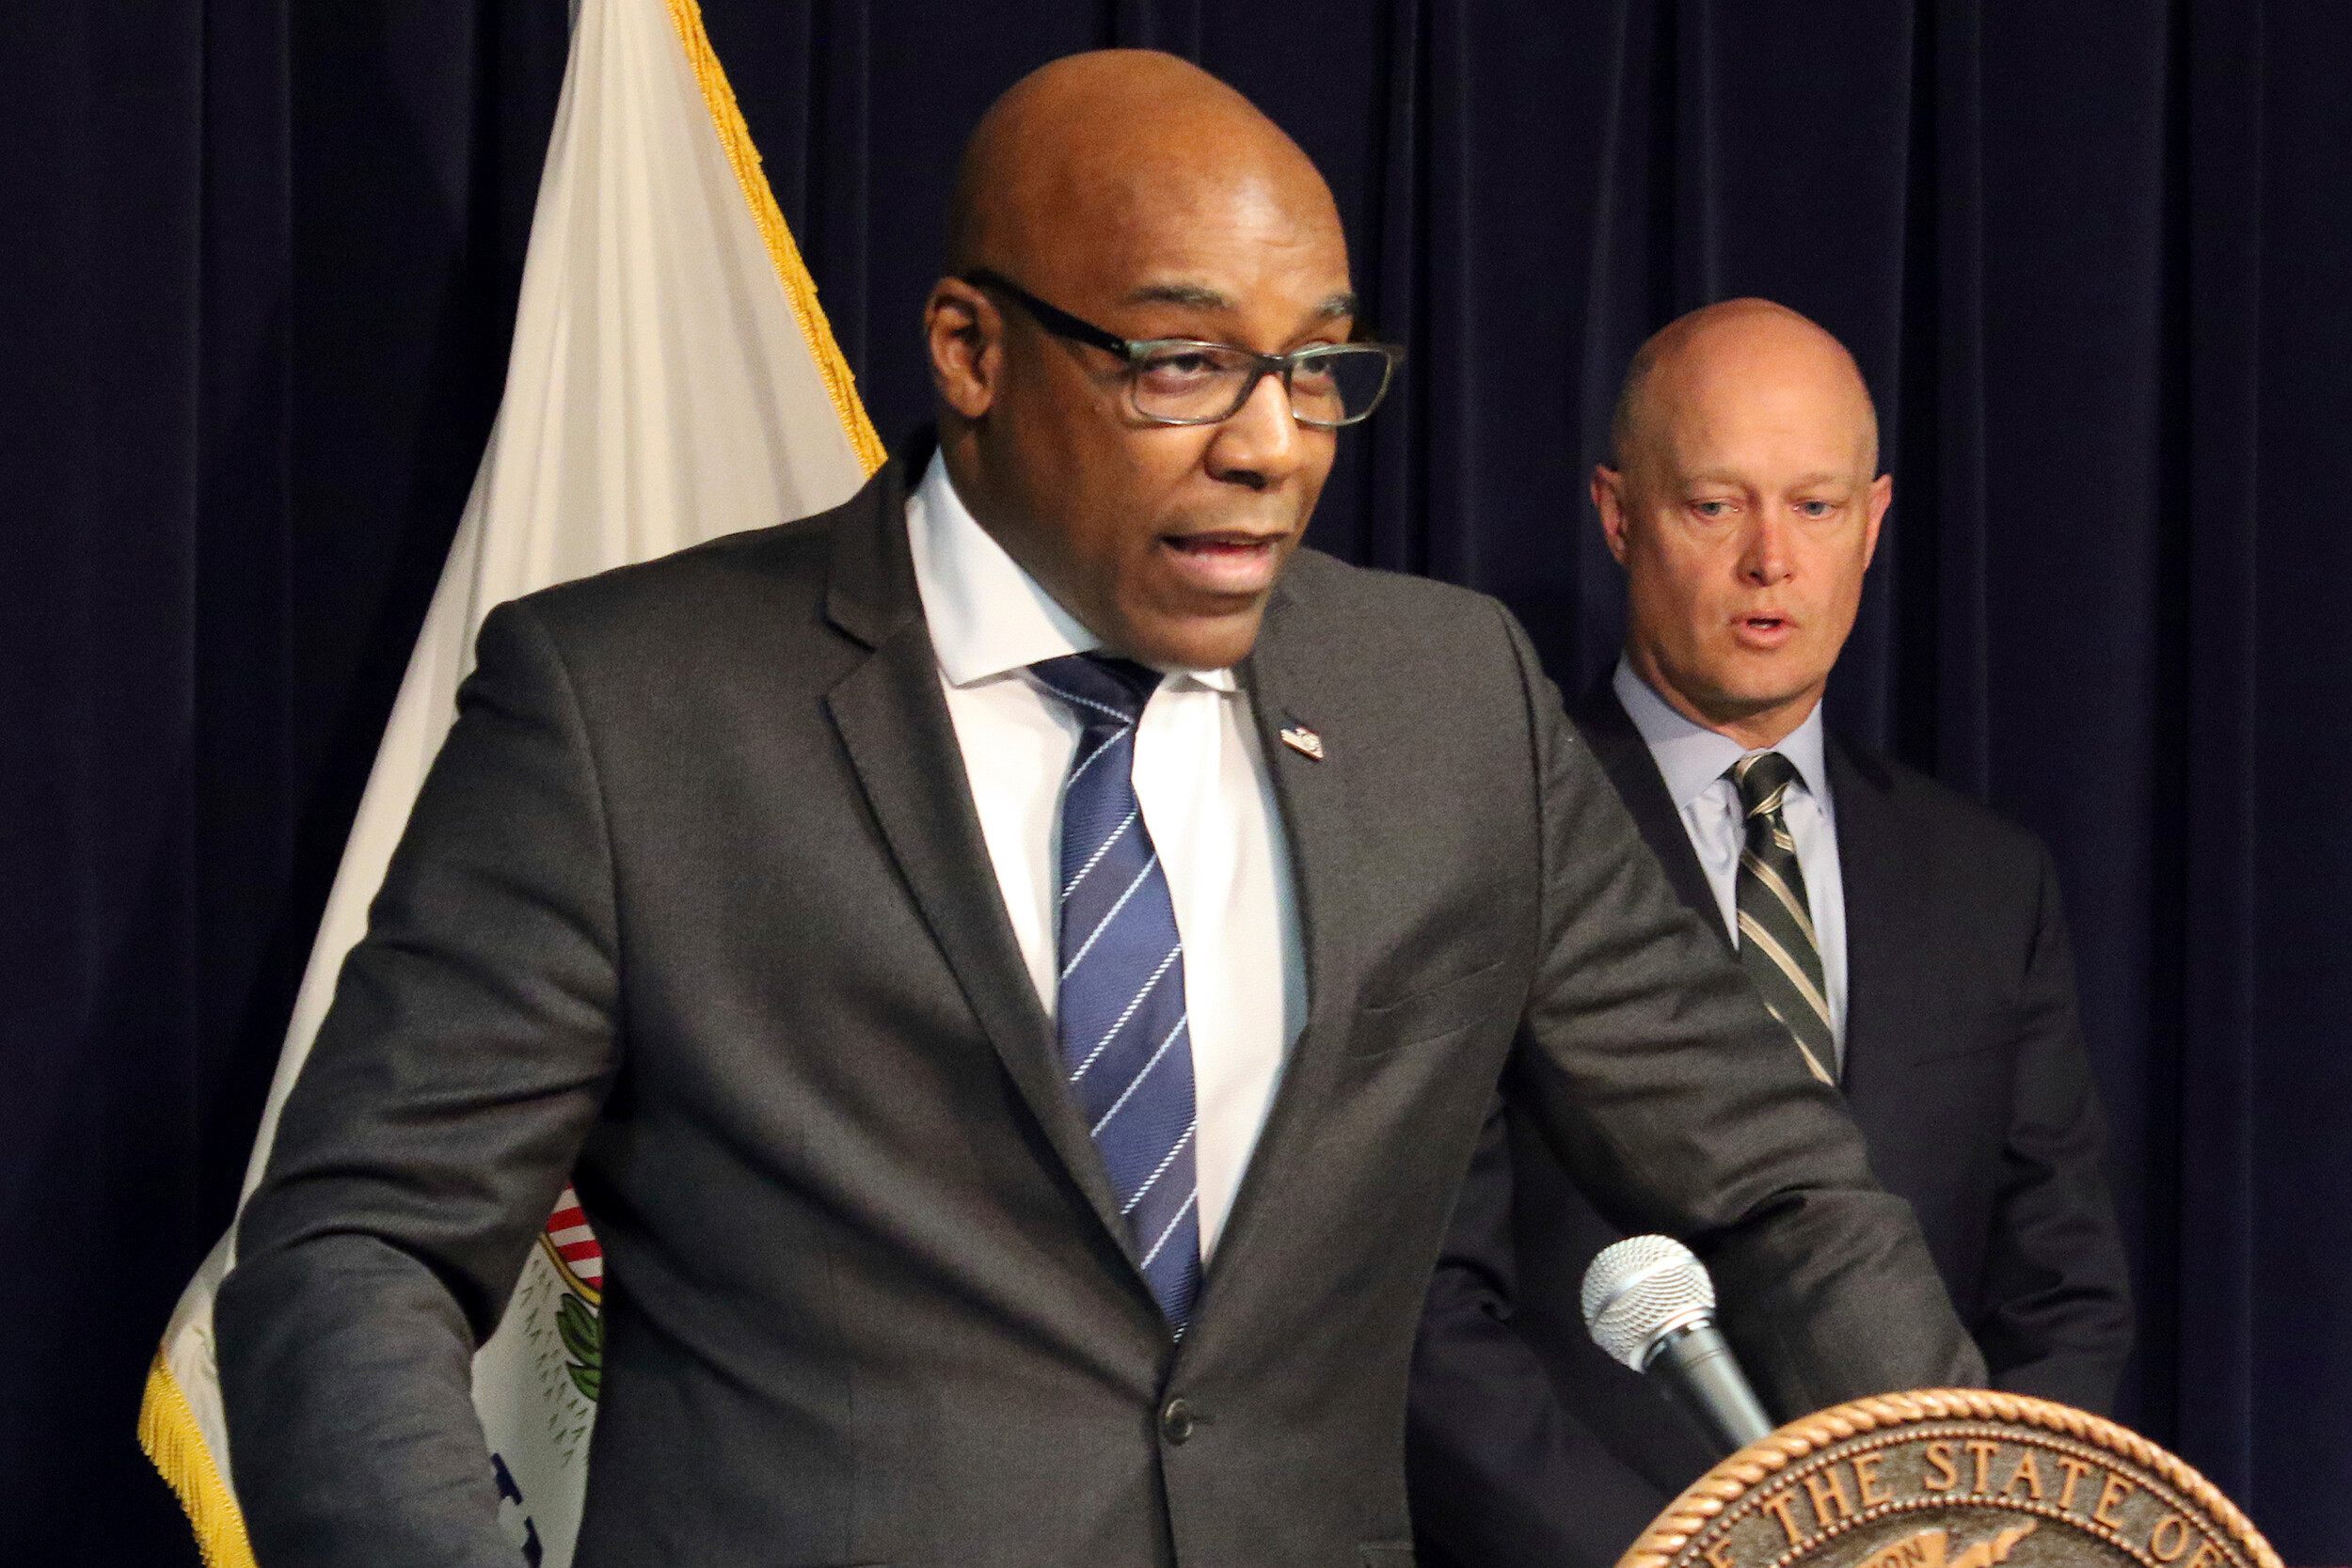 <i>Noreen Nasir/AP/FILE</i><br/>Illinois Attorney General Kwame Raoul initiated a formal investigation into the Joliet Police Department.